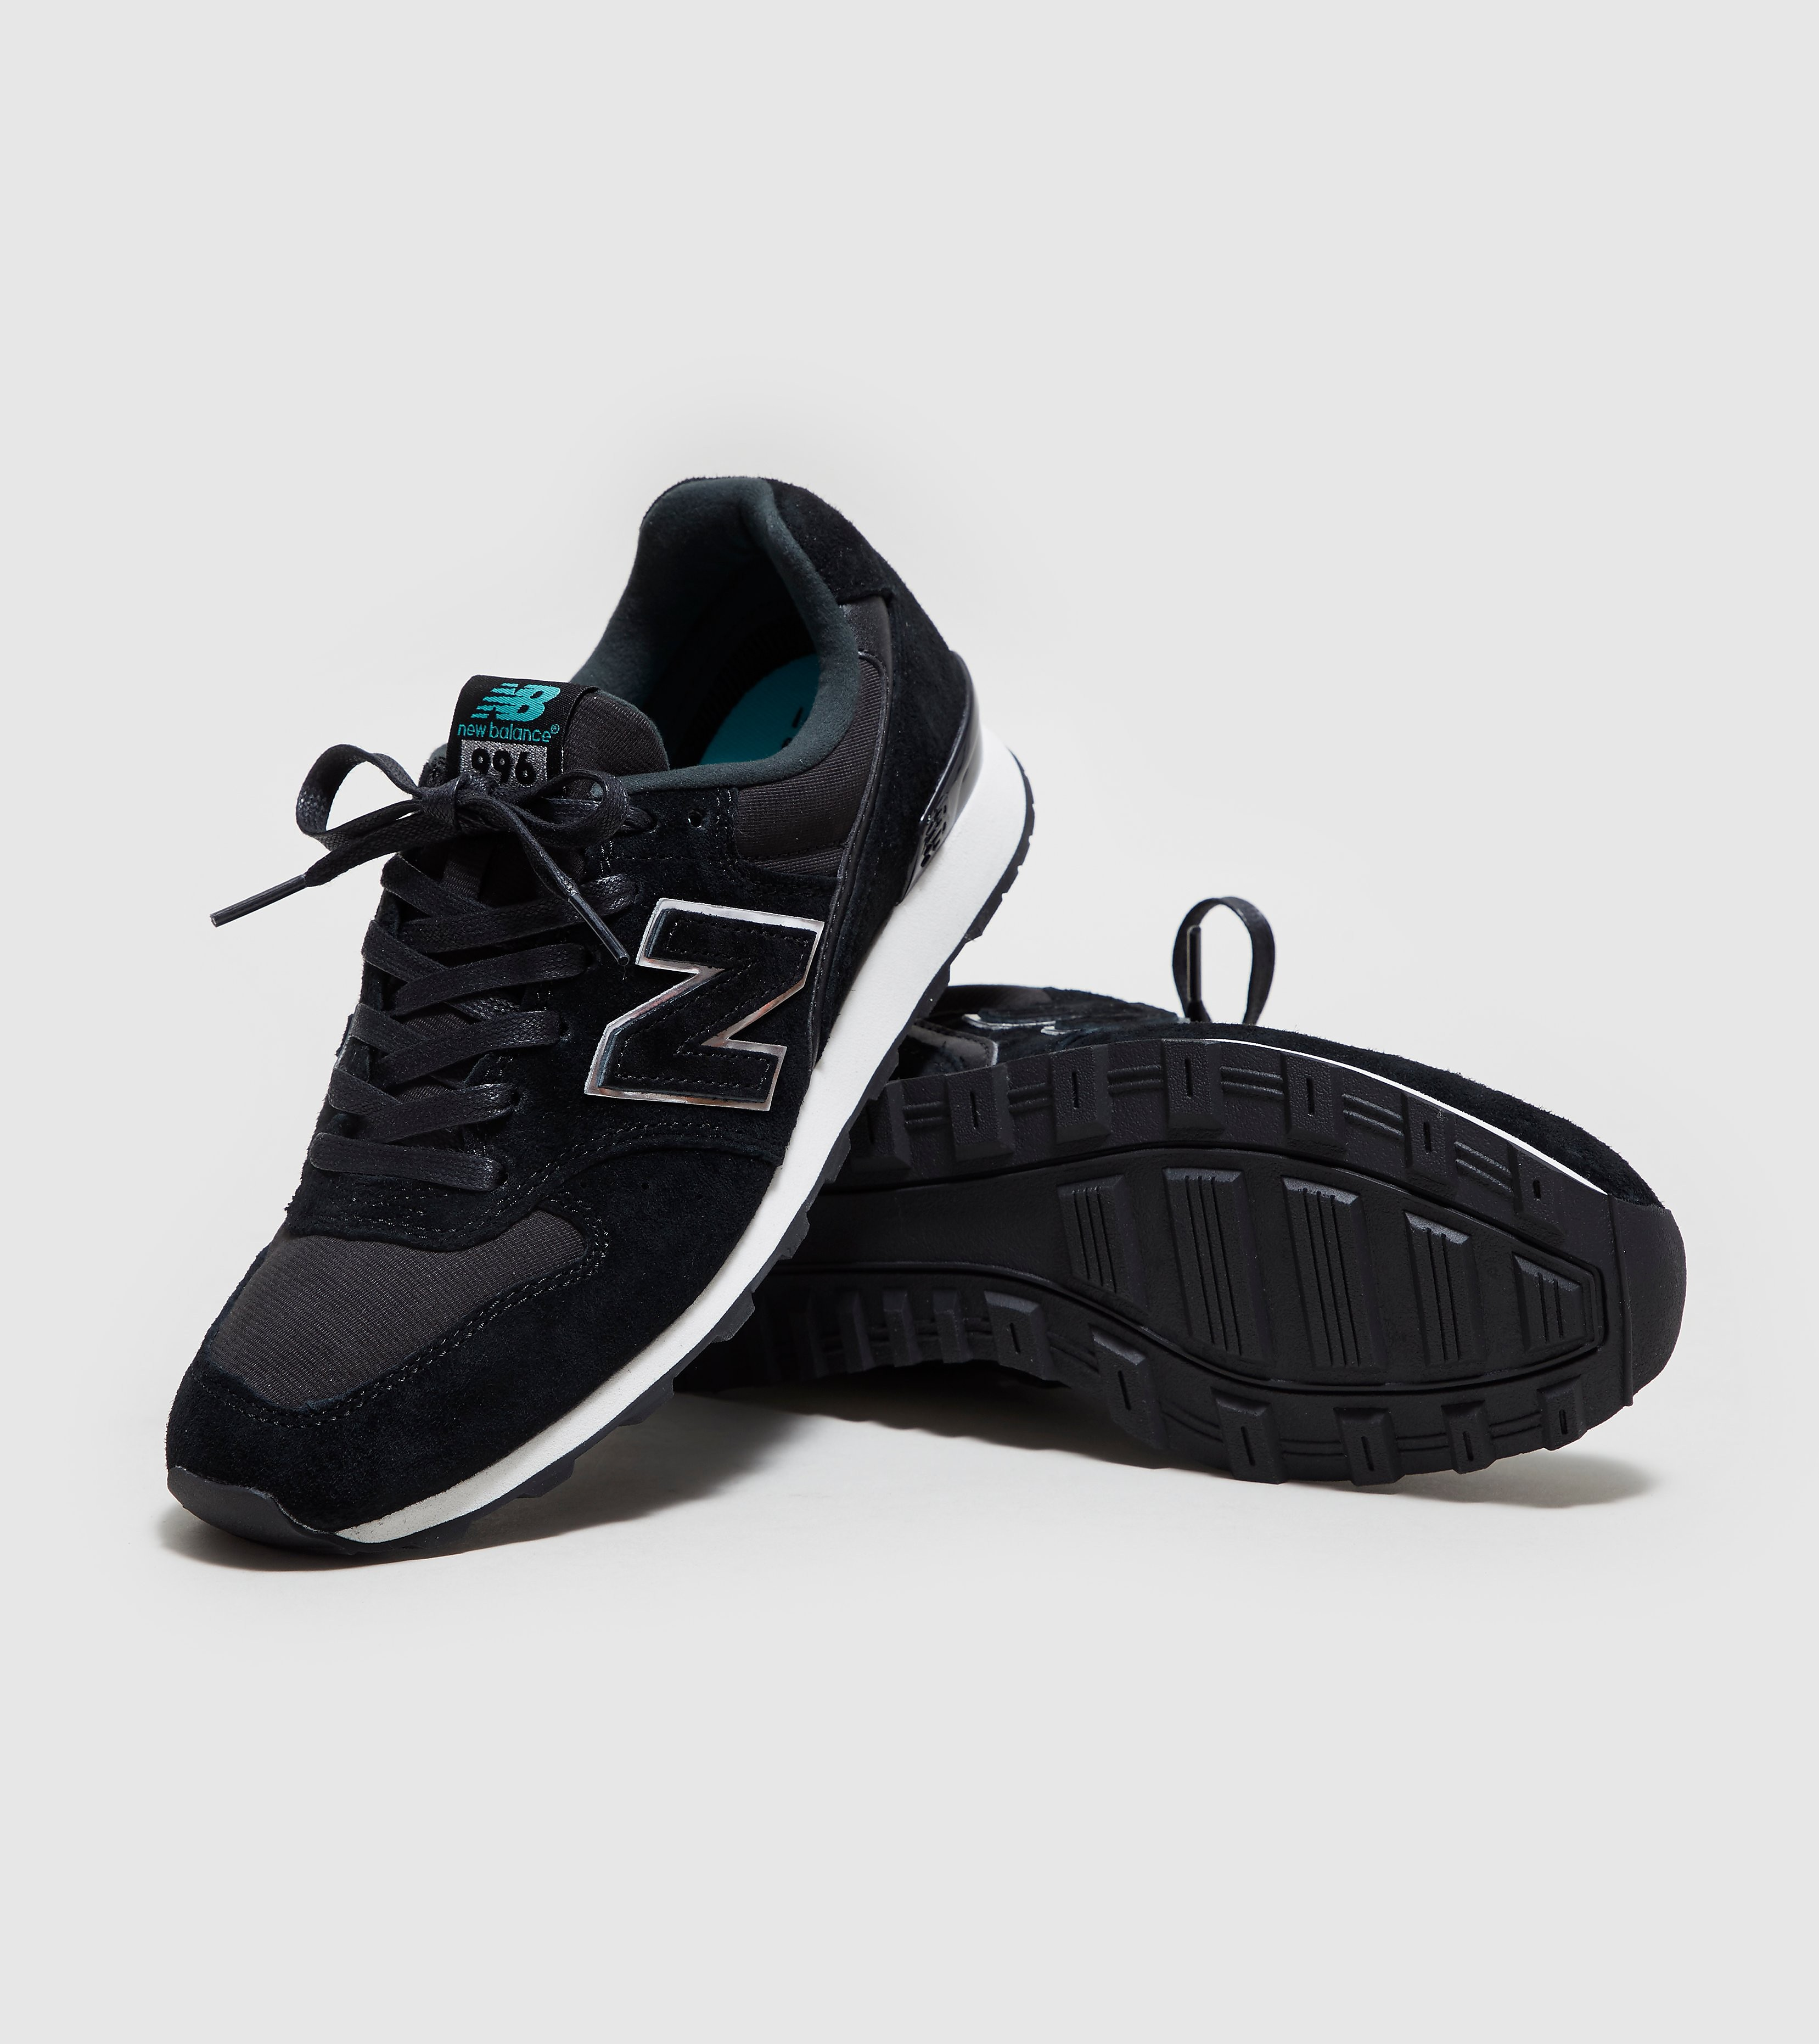 New Balance 996 Suede Women's